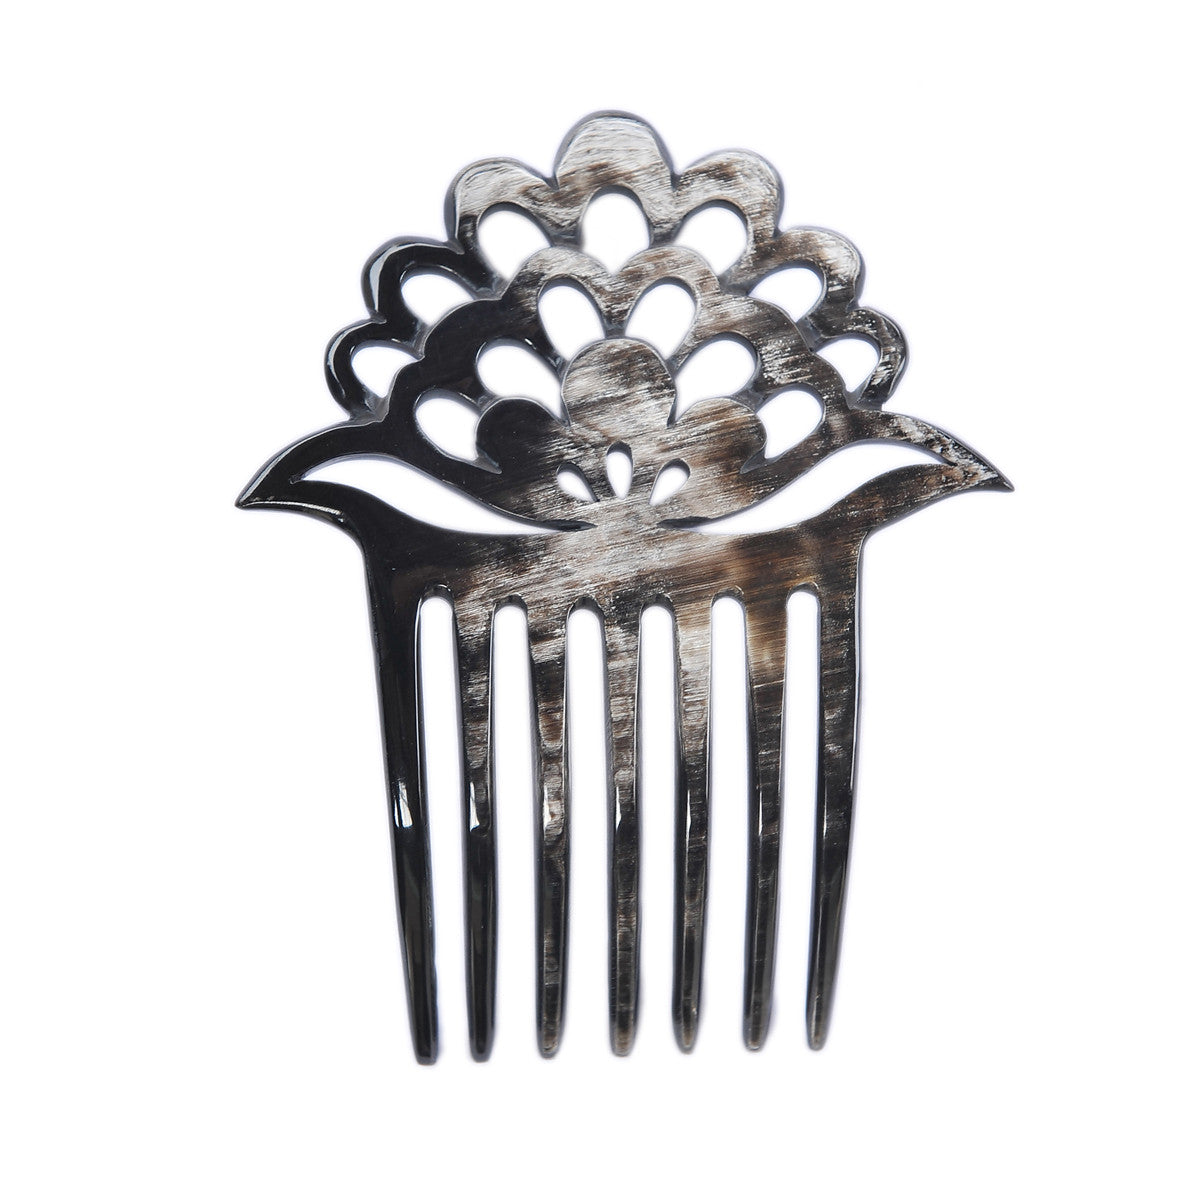 Black, Dark Shade 7 prongs Buffalo Horn Hair comb